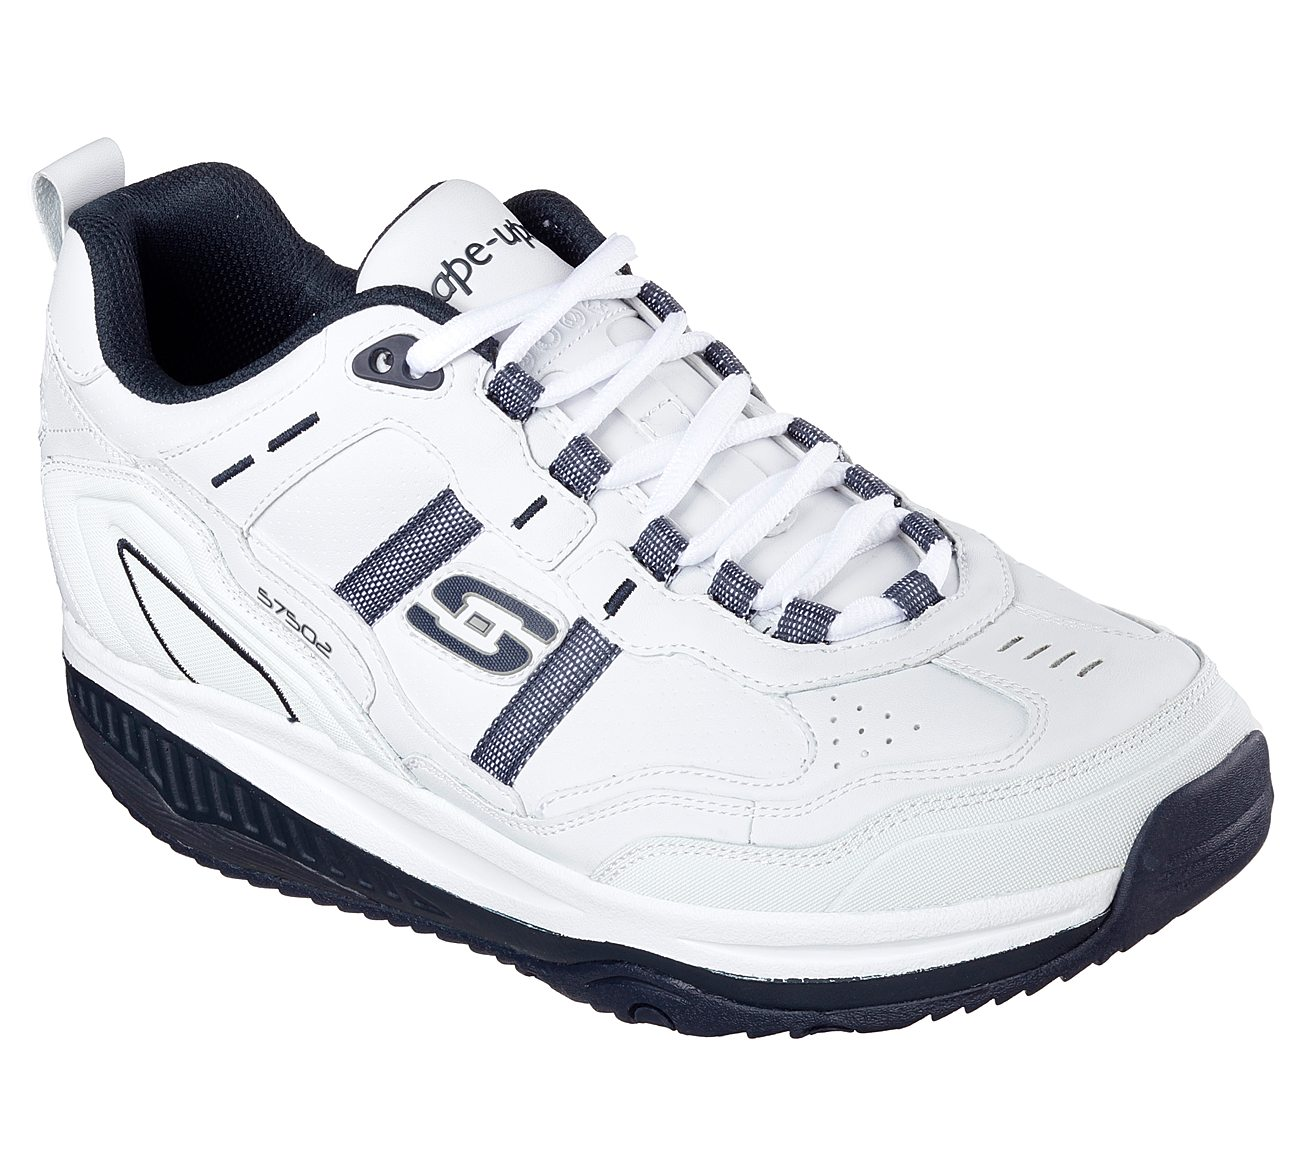 Buy SKECHERS Shape-ups 2.0 XT - Extreme